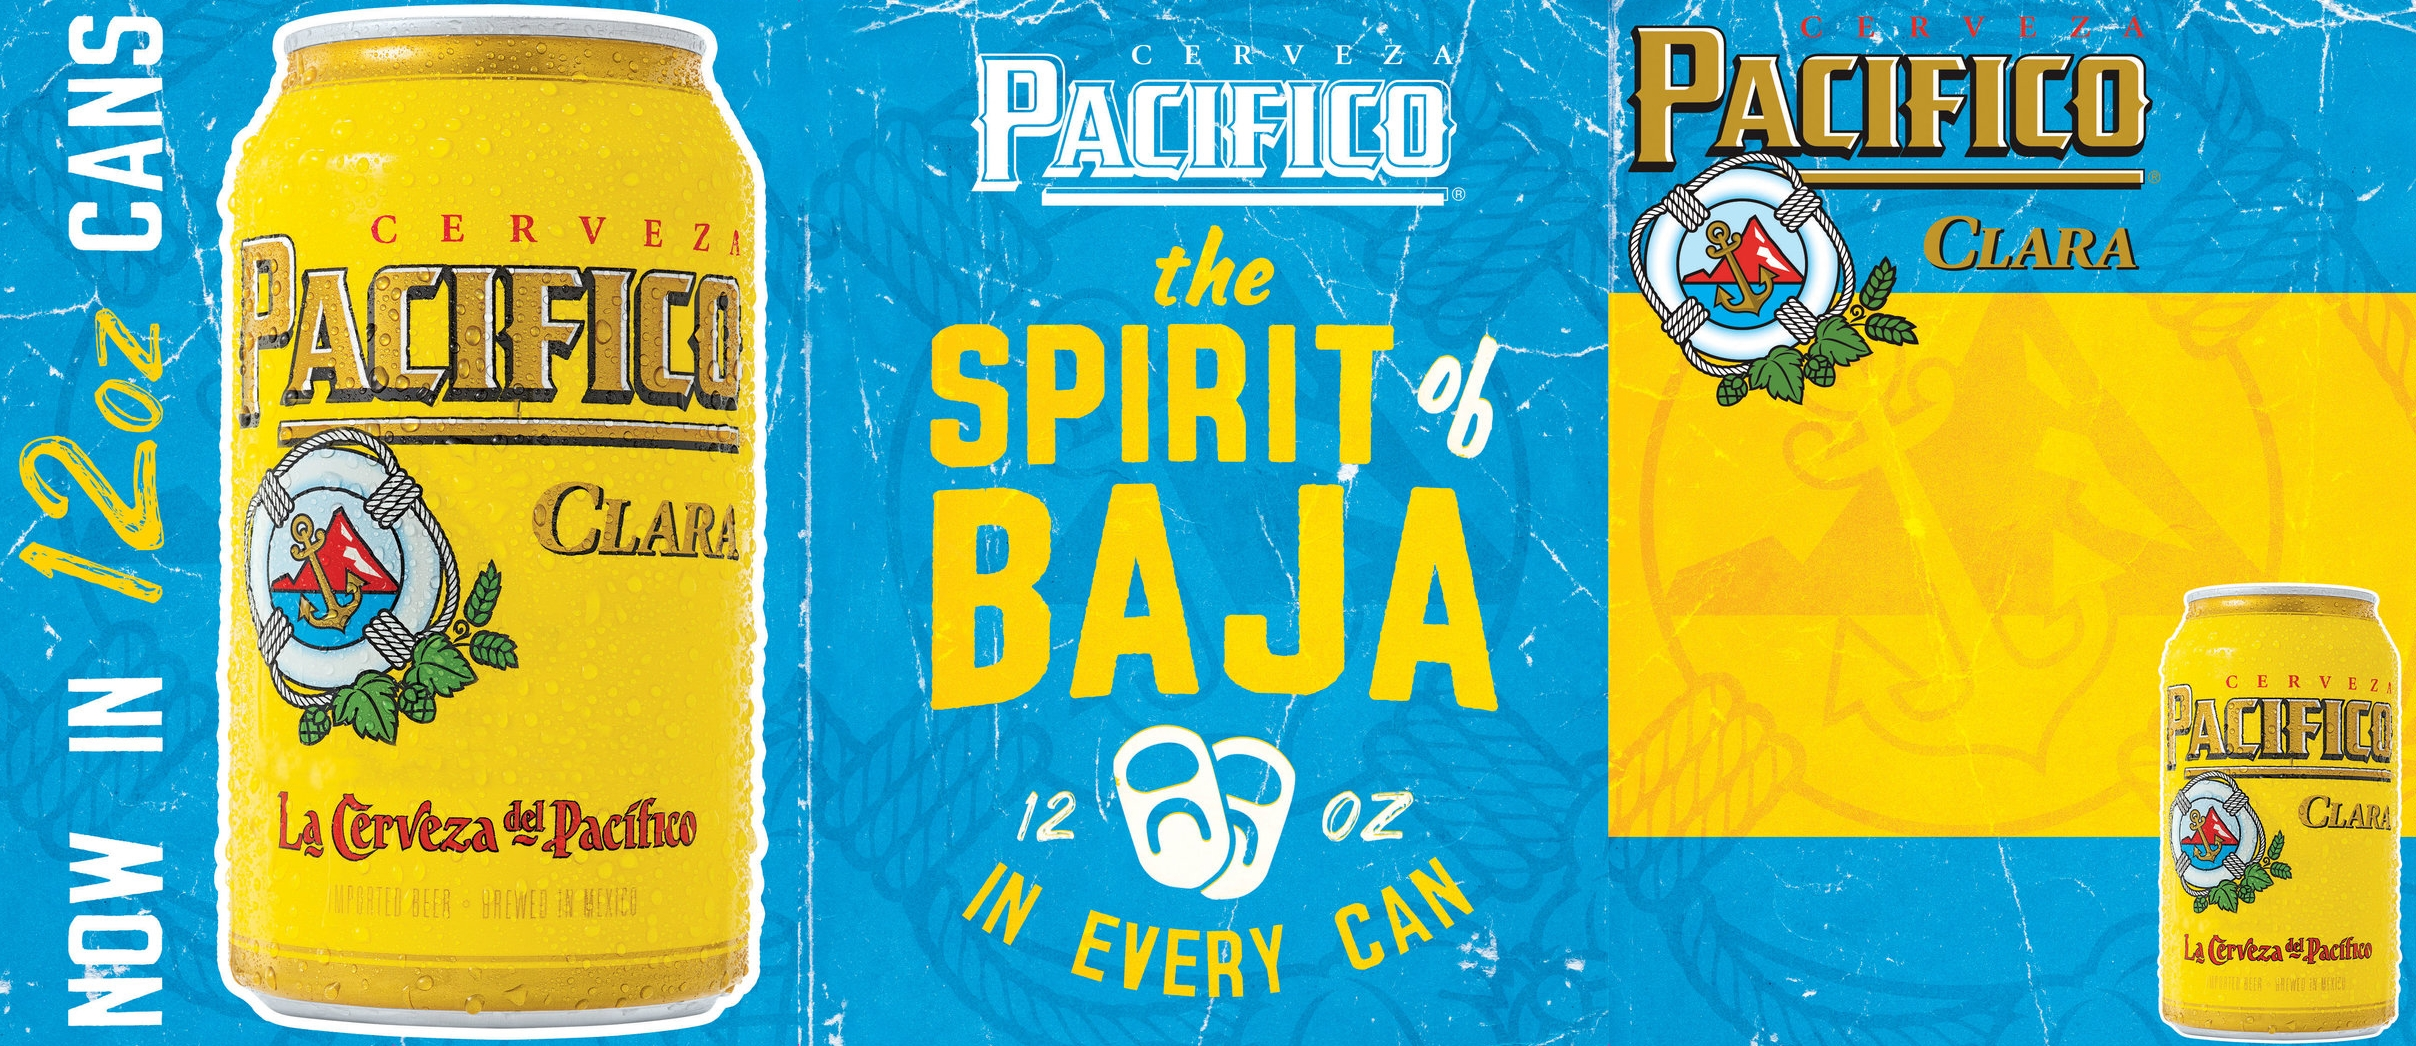 PROMOTION CAMPAIGNS - PACIFICO